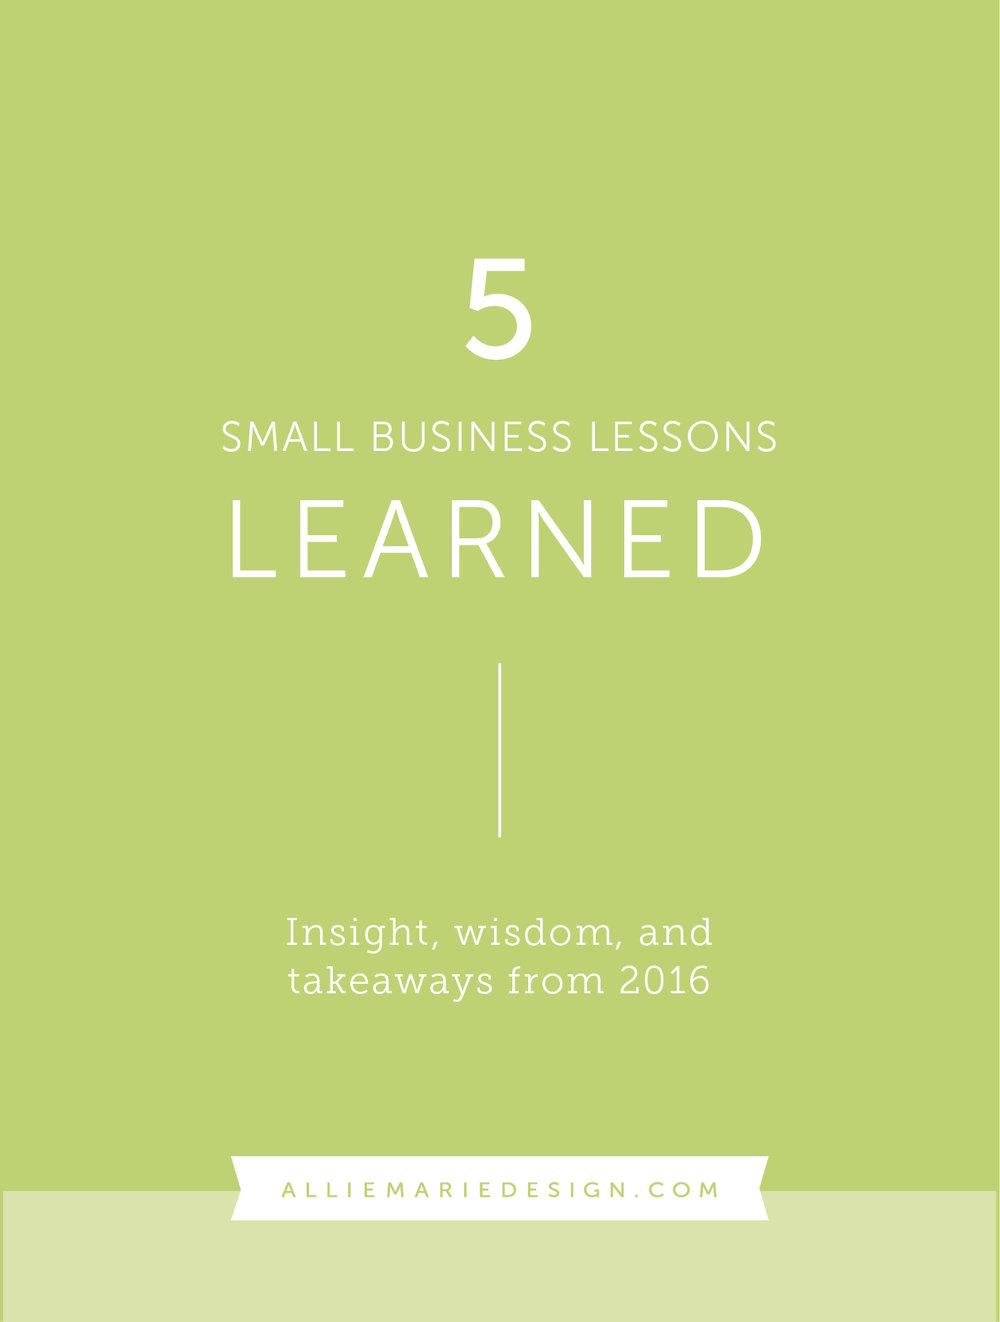 5 Small Business Lessons Learned this year, plus 5 inspirational prints!